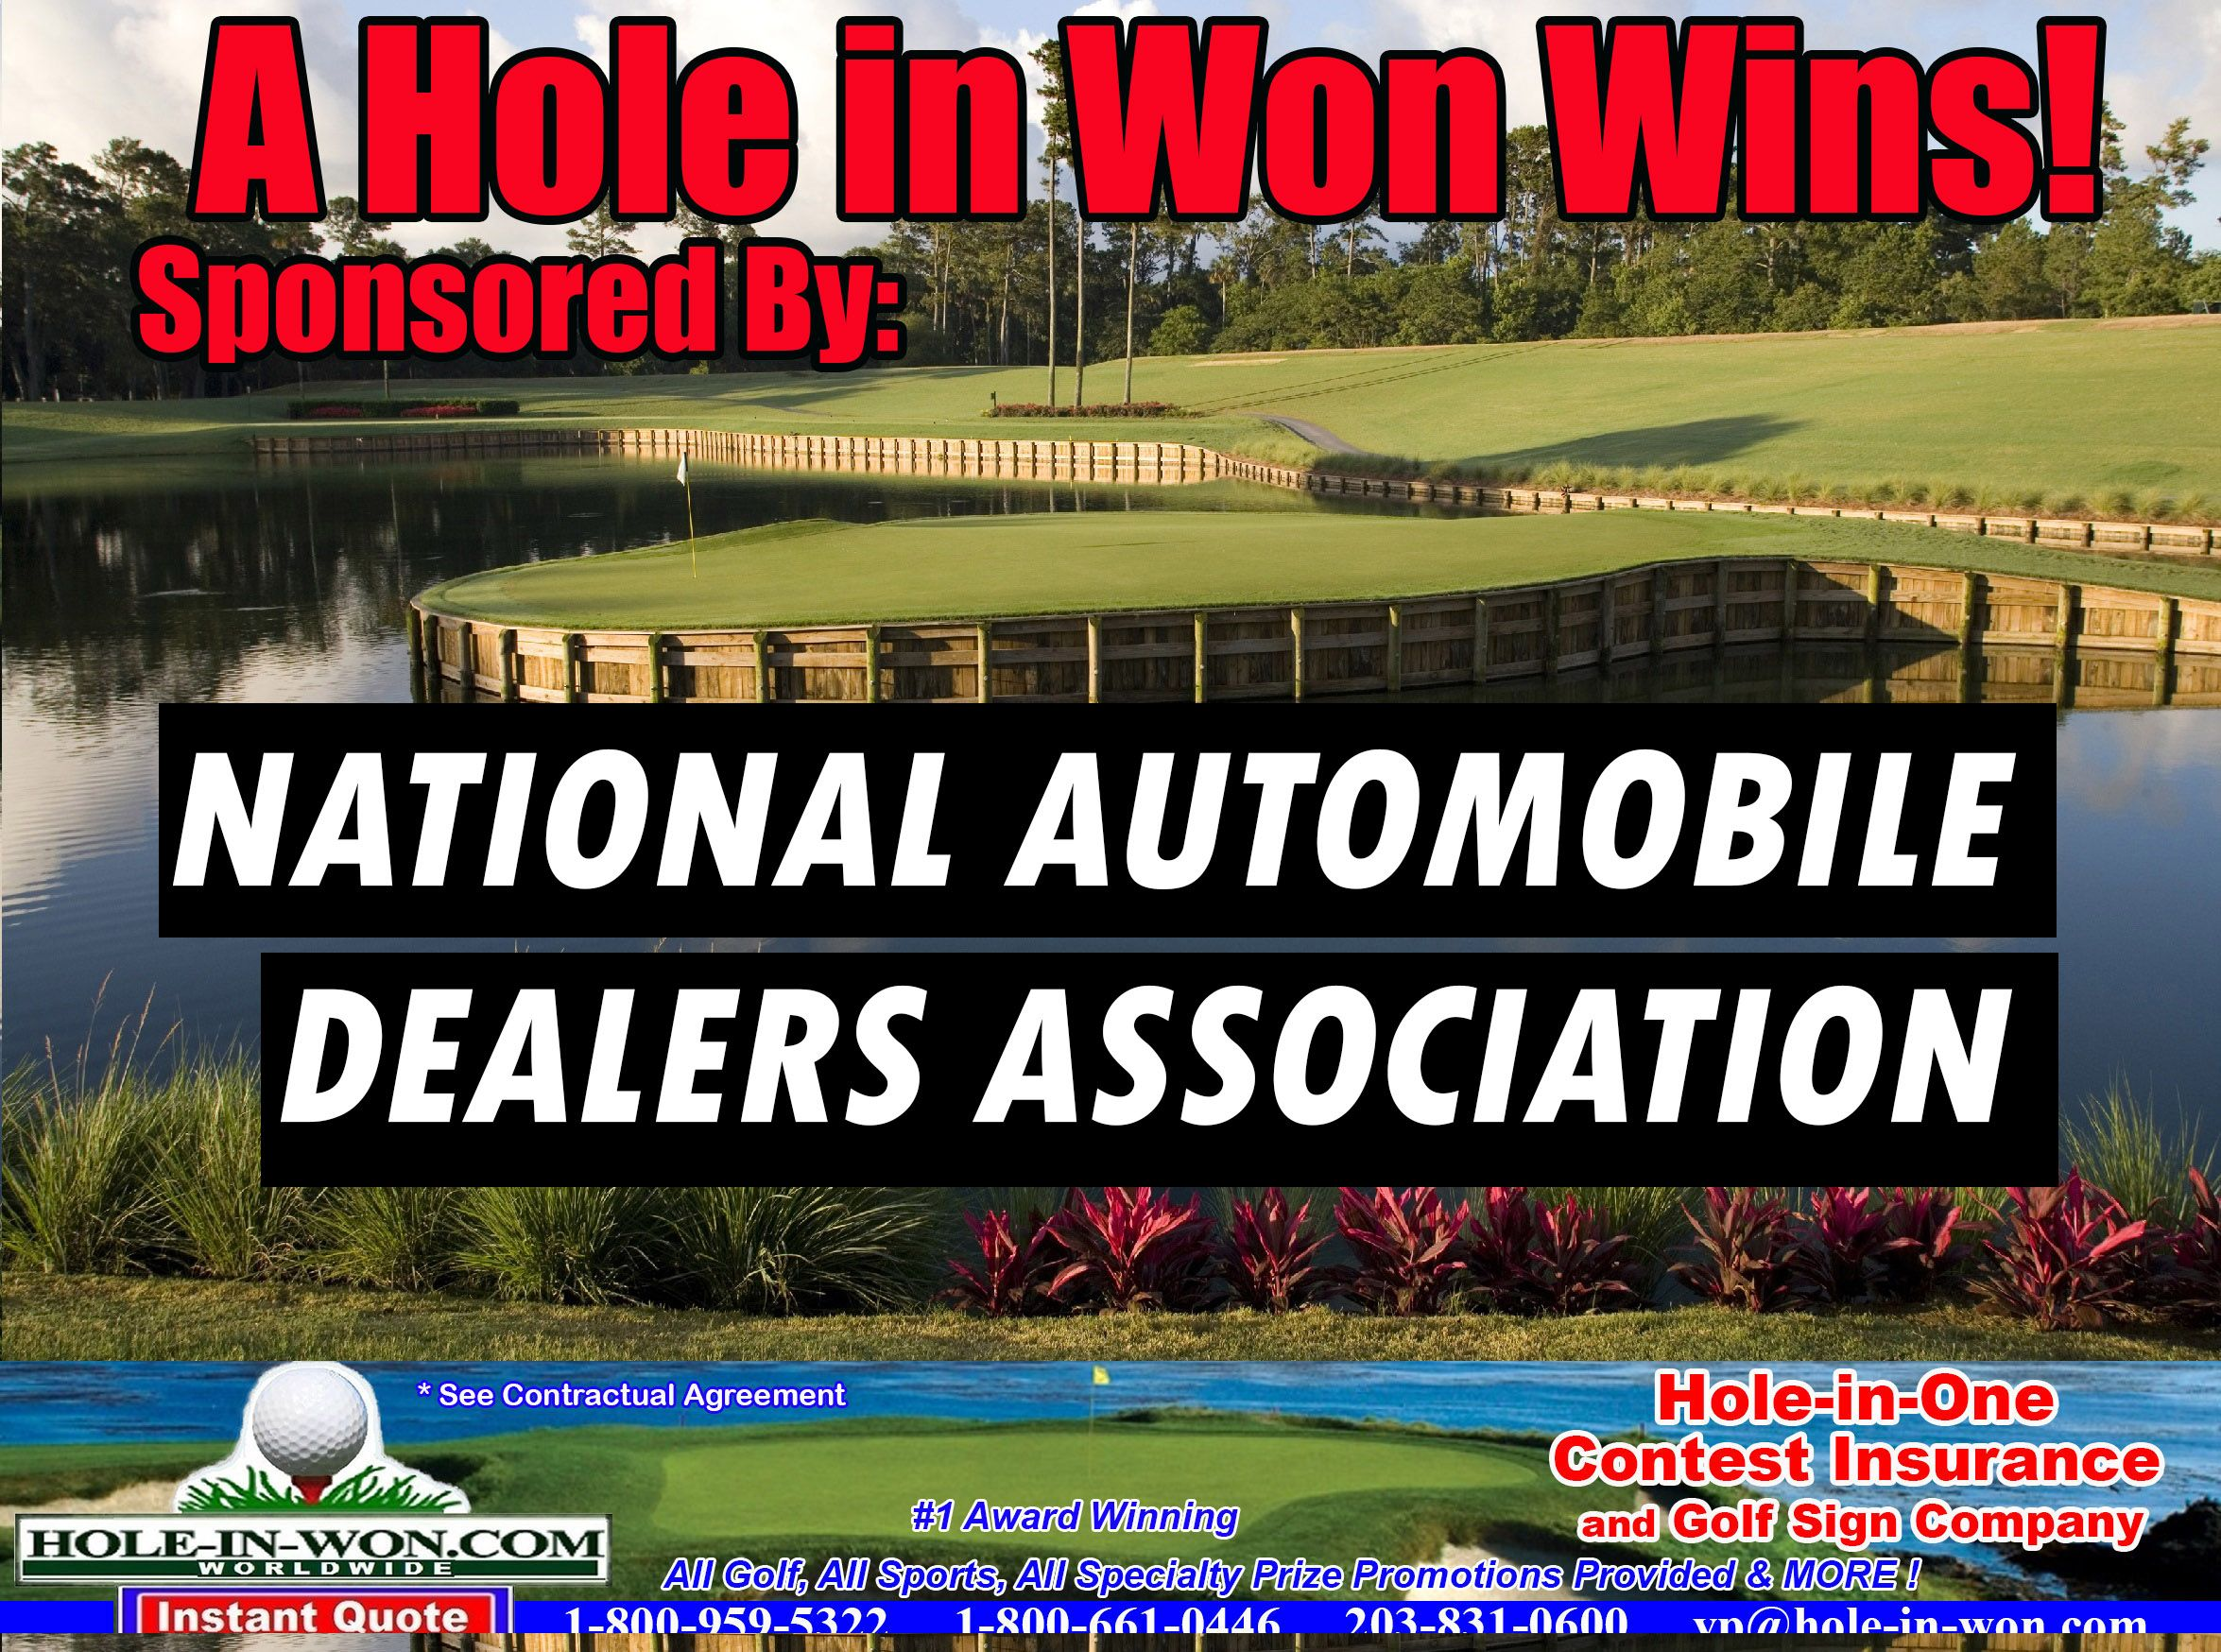 Auto Dealer Association Promotions Hole In One Insurance All